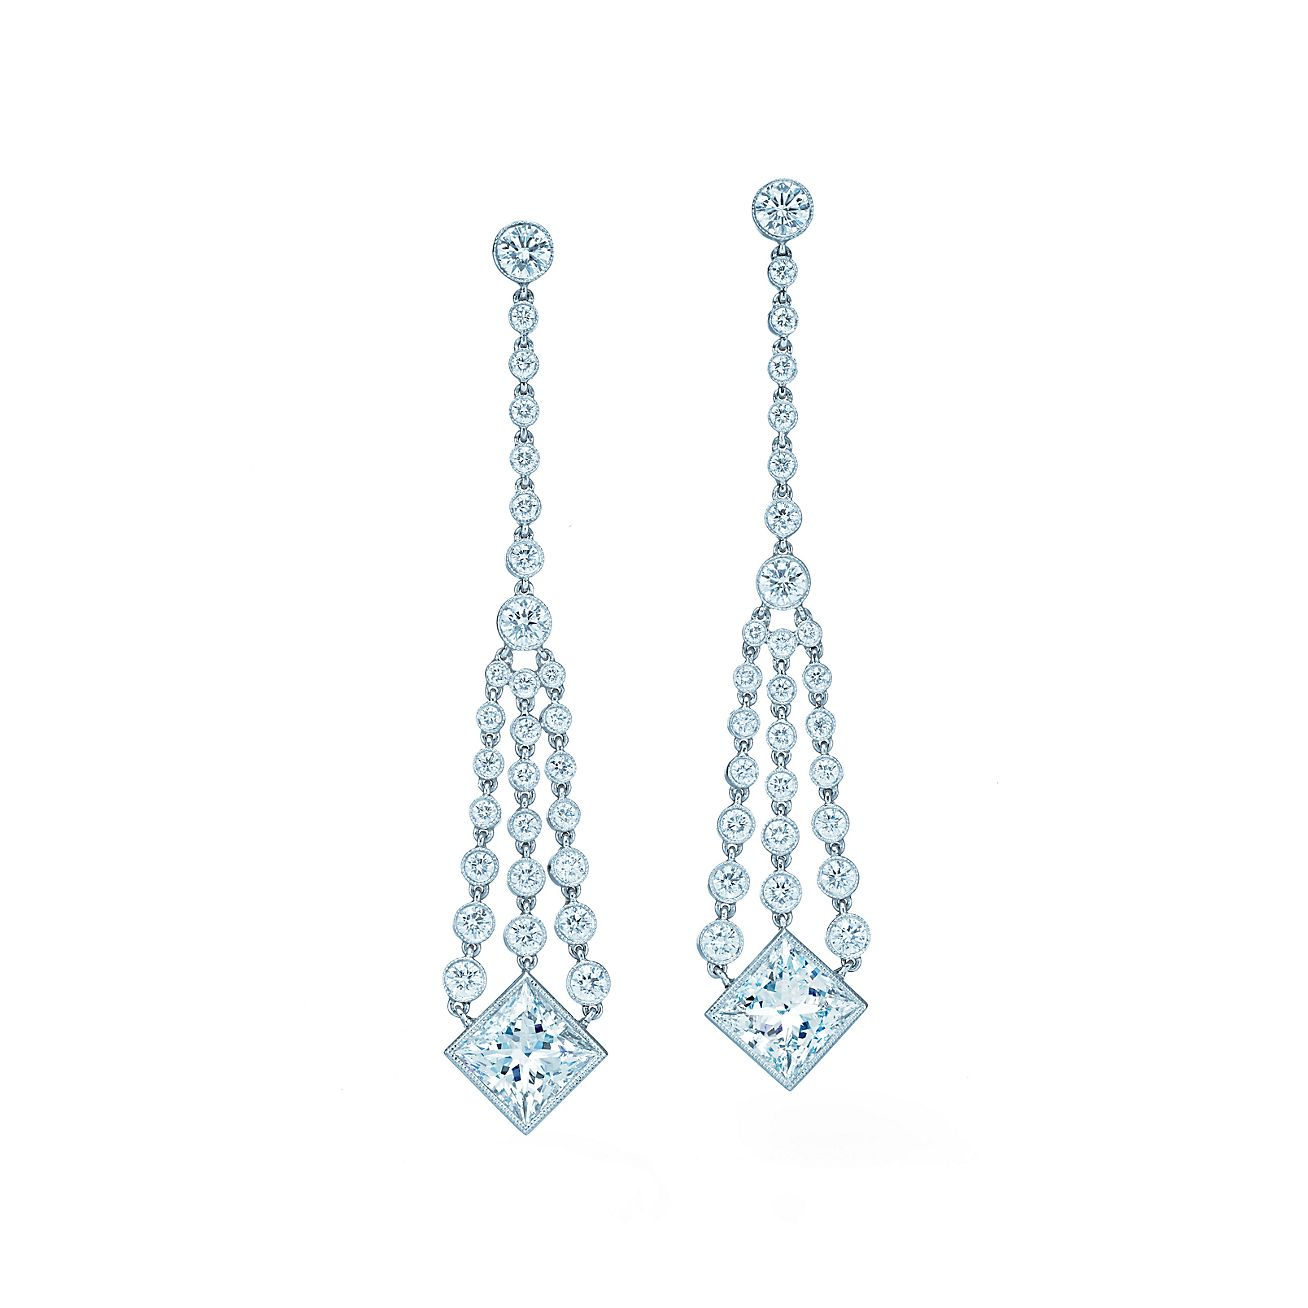 38a7bf105 Diamond Chandelier Earrings Of Princess Cut And Round Diamonds In. Tiffany  Co Enchant ...